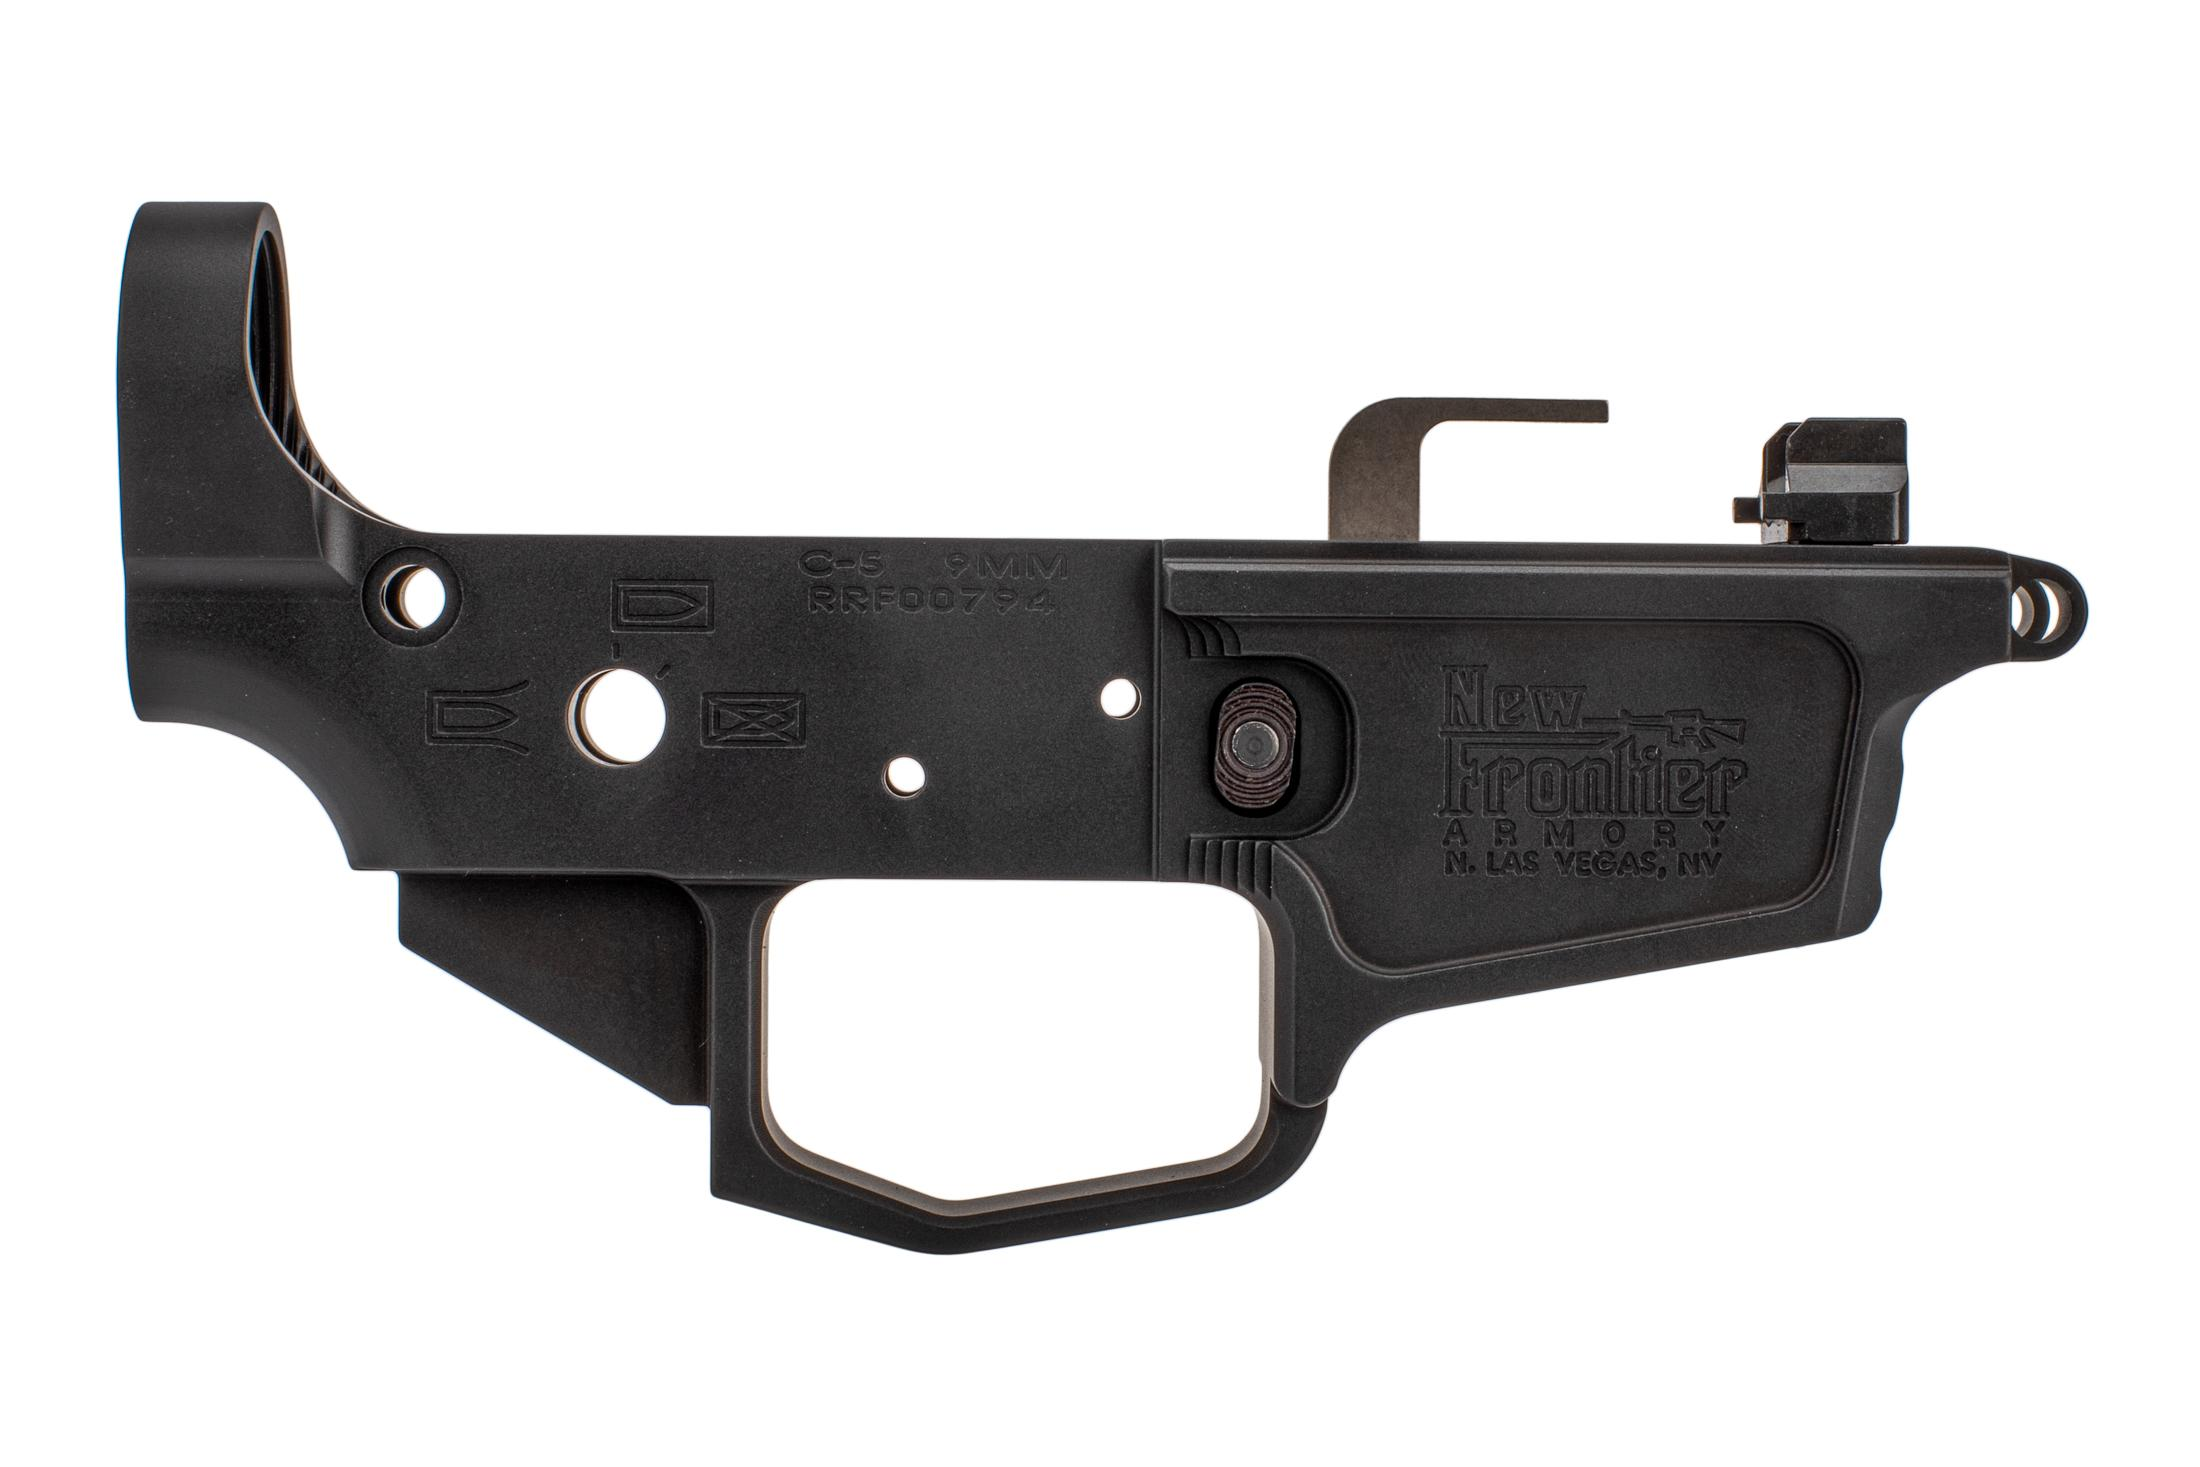 New Frontier Armory 9mm C5 stripped lower features ejector, feed ramp, and magazine release pre-installed.